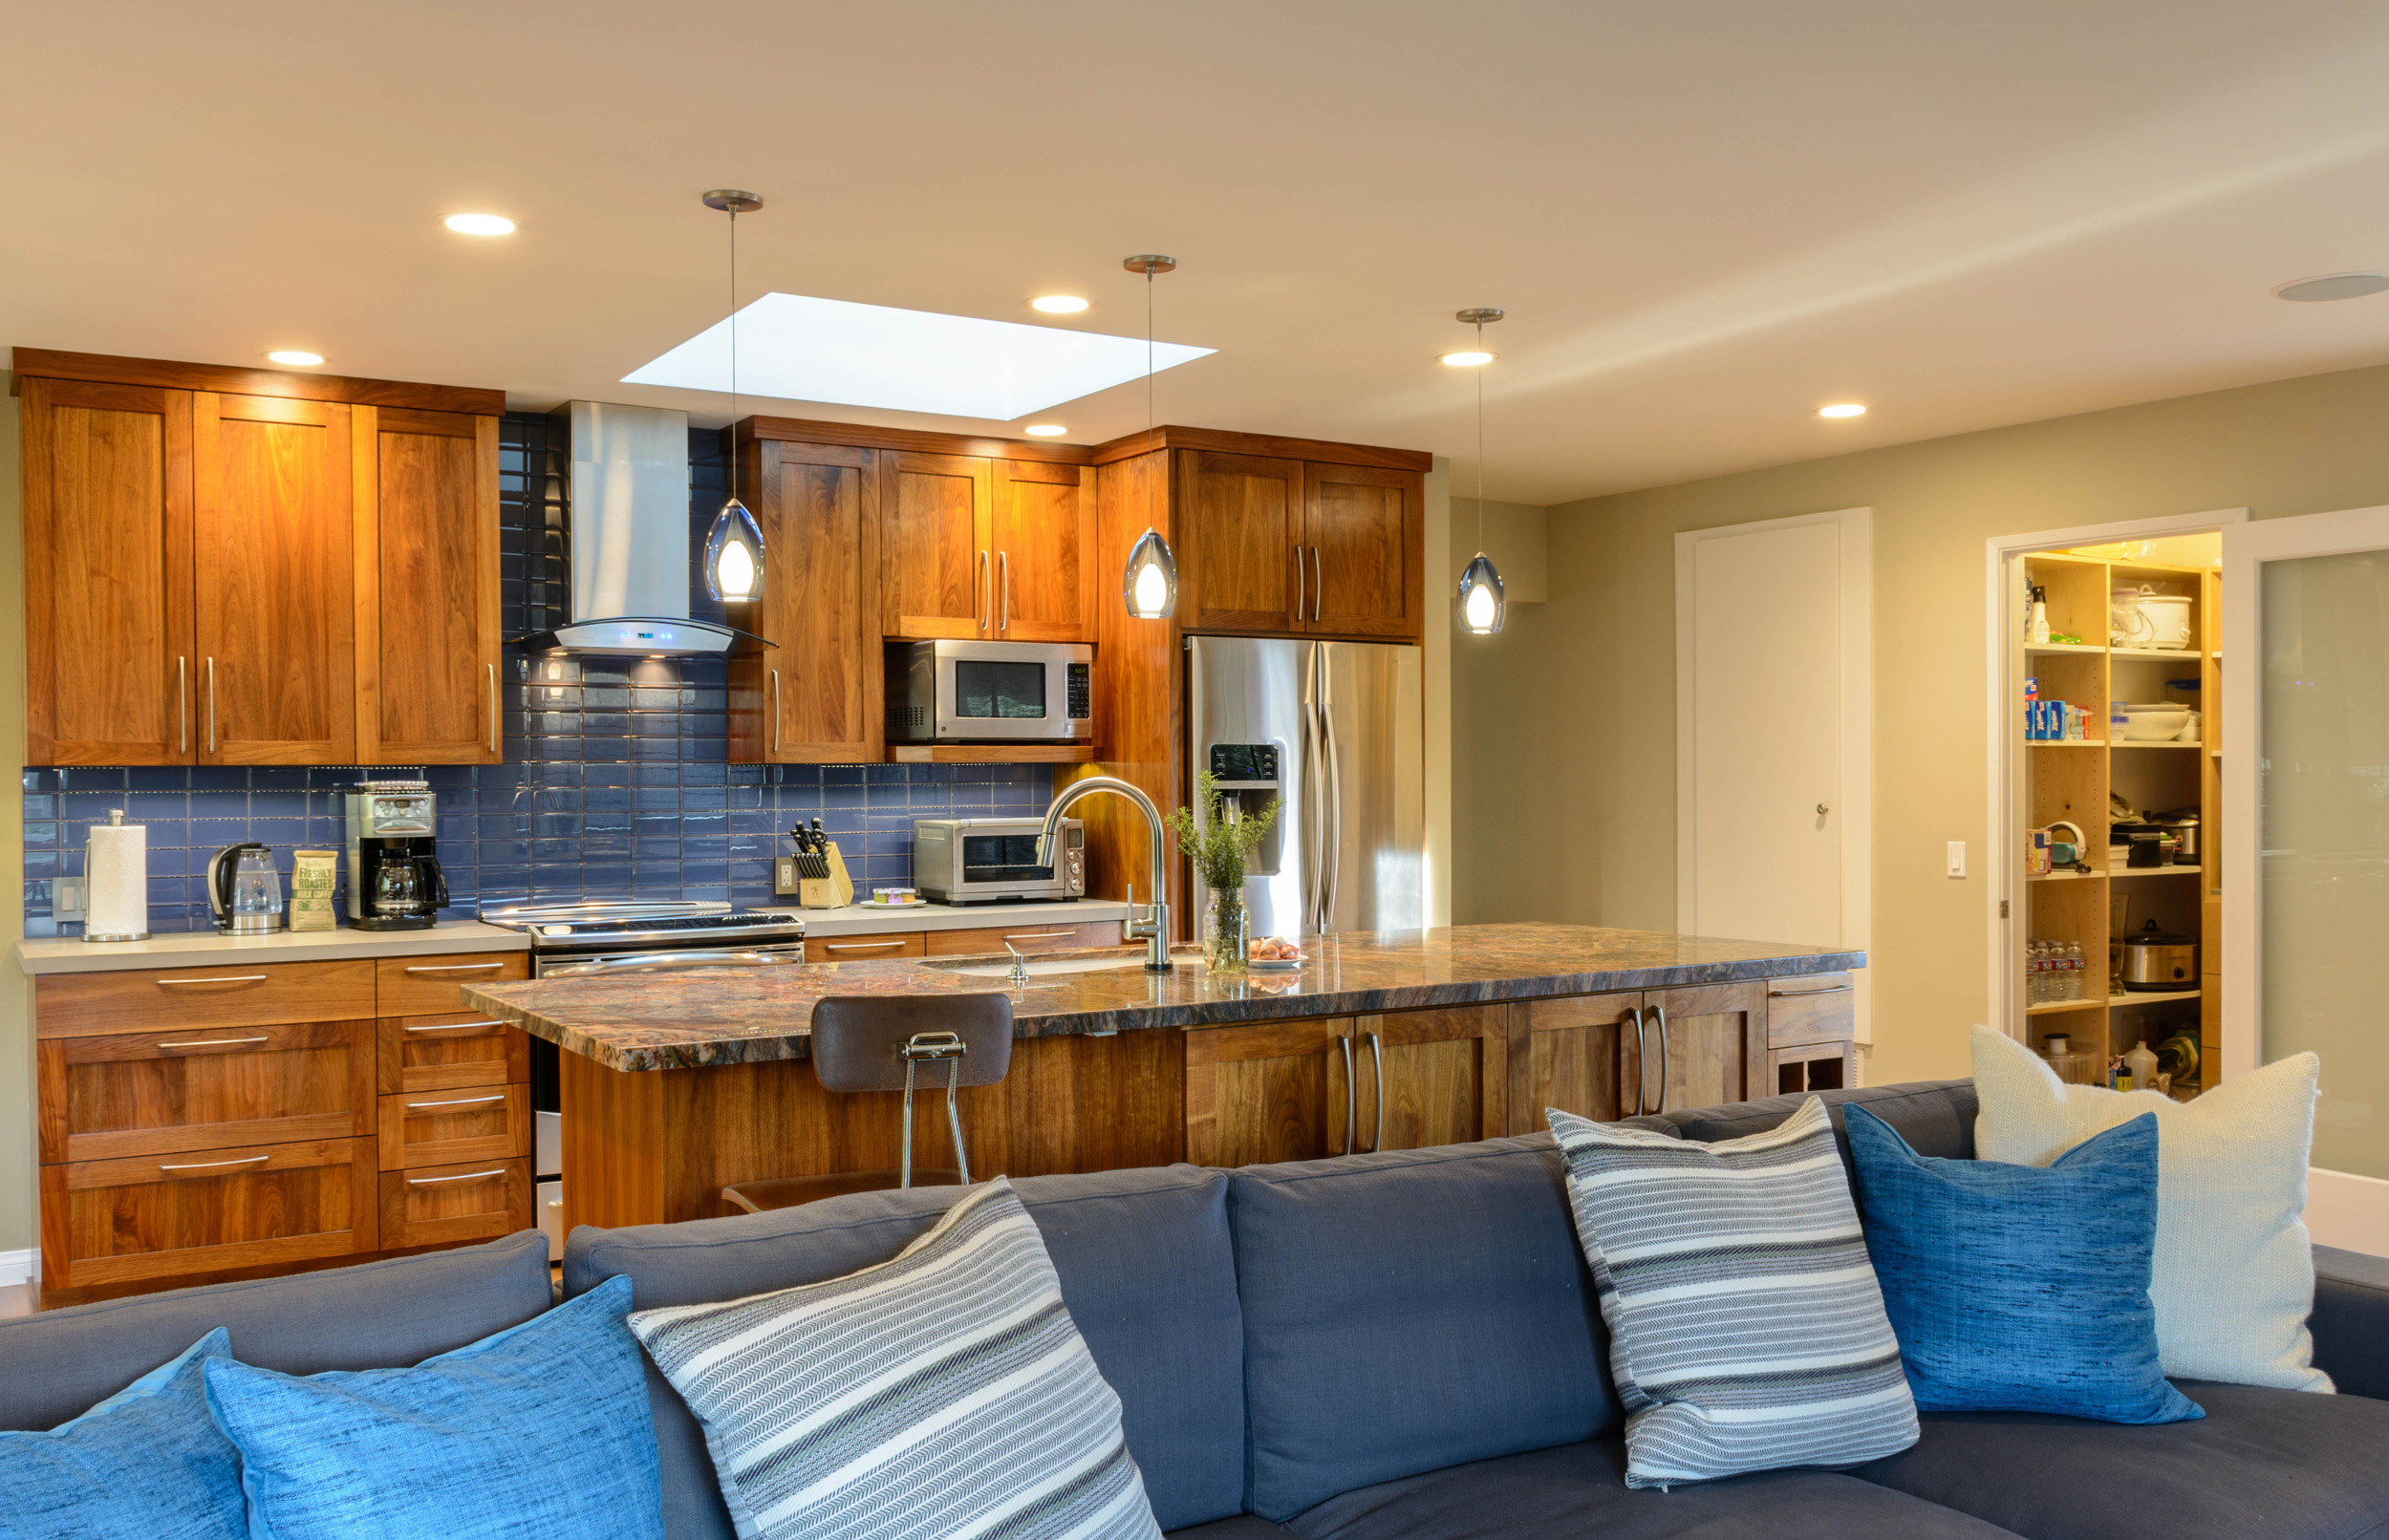 Great room comfort: a blend of walnut, blue and soft lighting